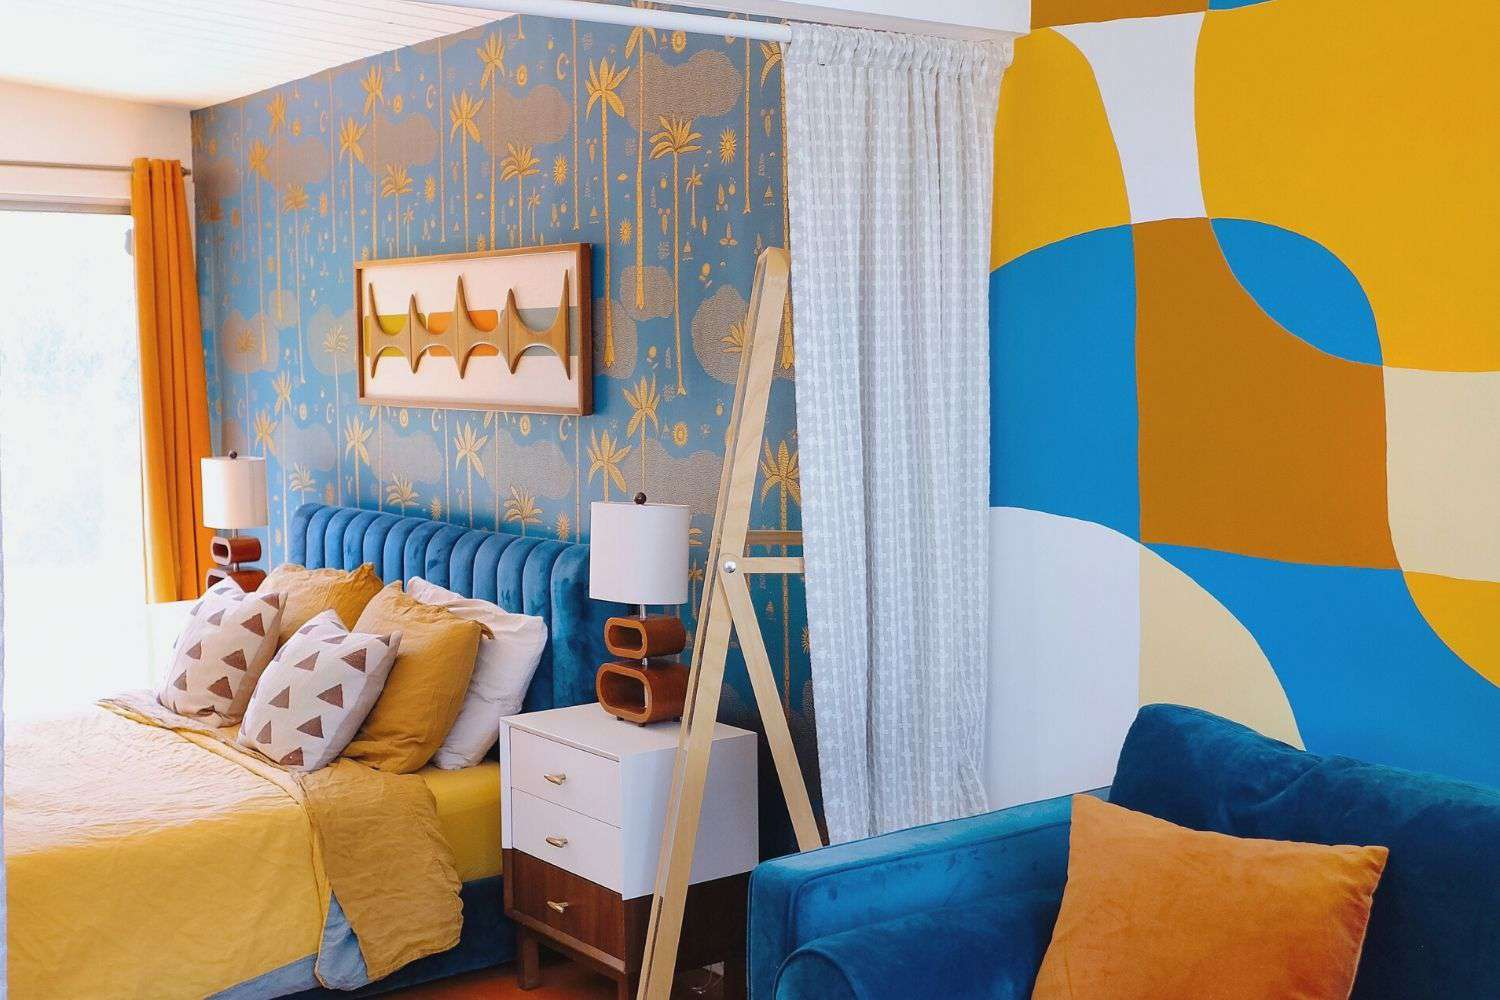 eclectic blue and yellow bedroom with various patterns and designs